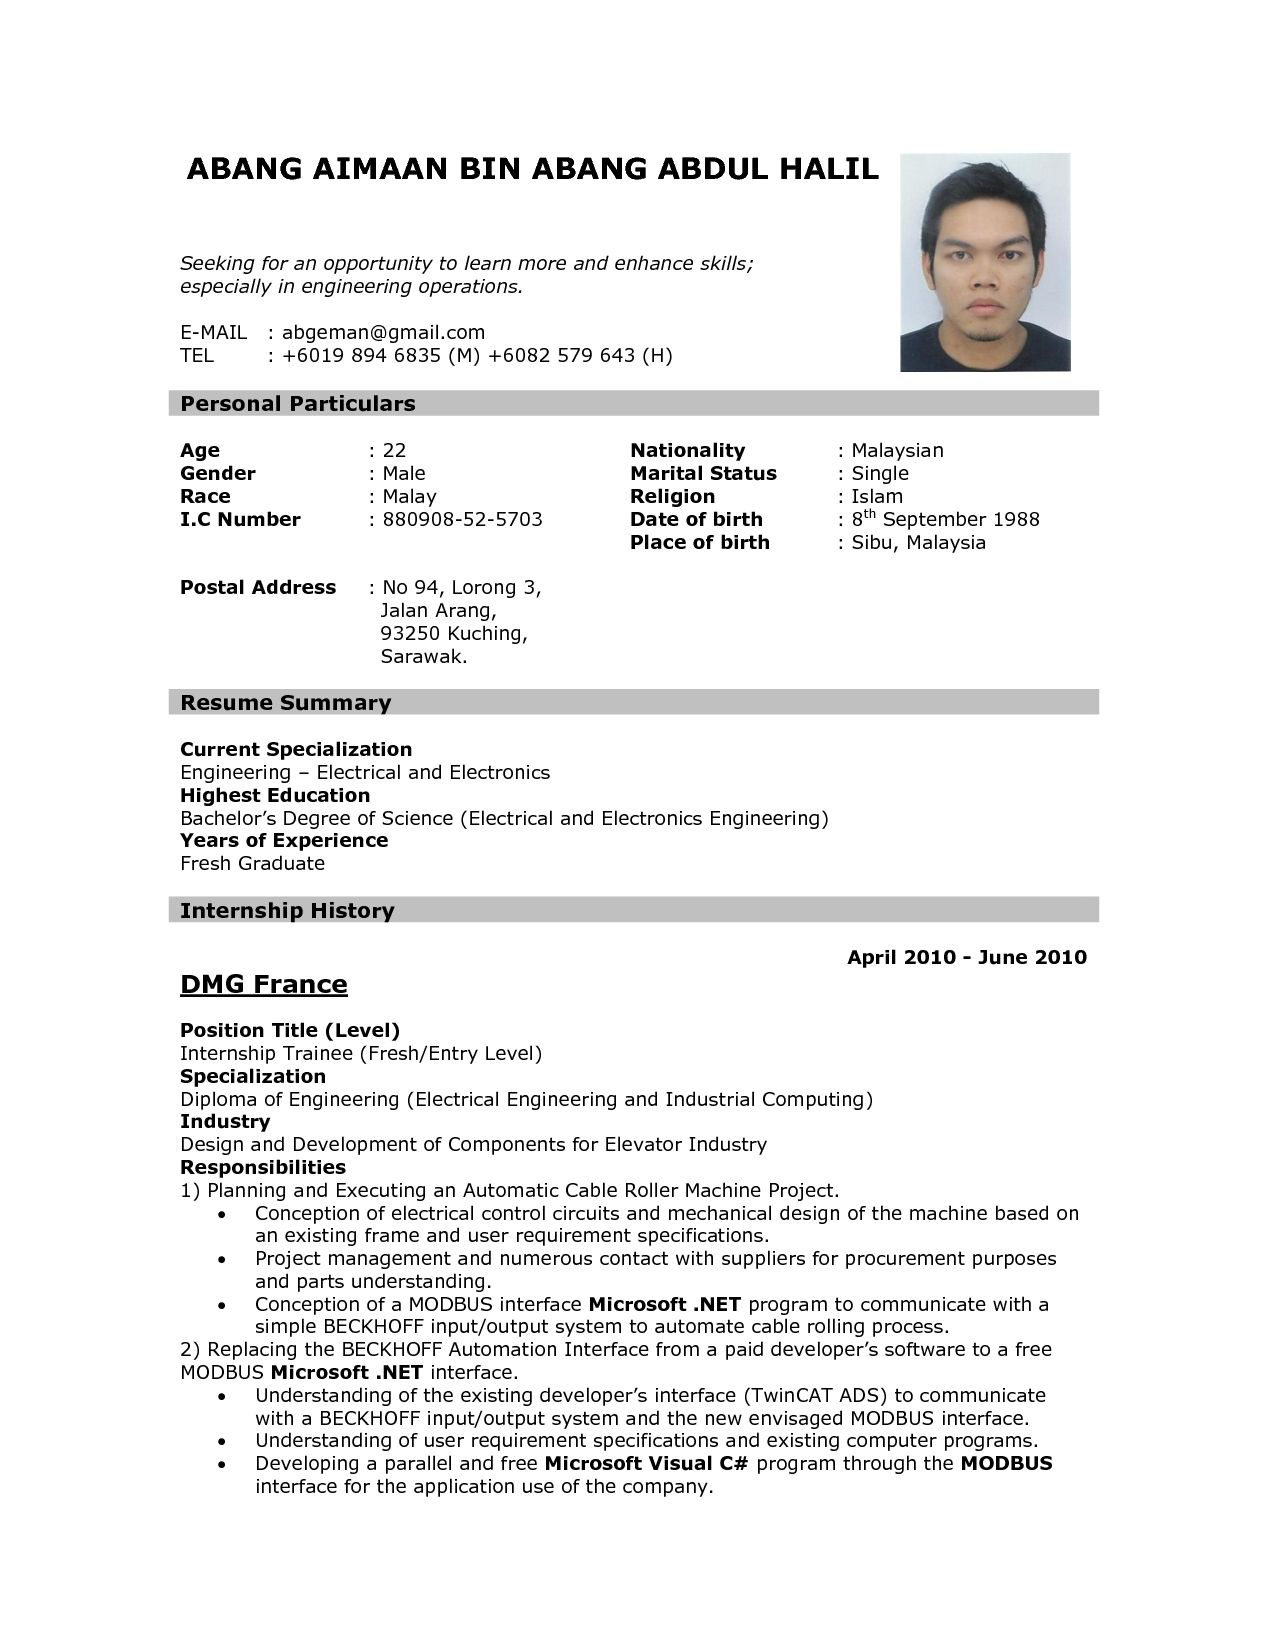 job application resume samples